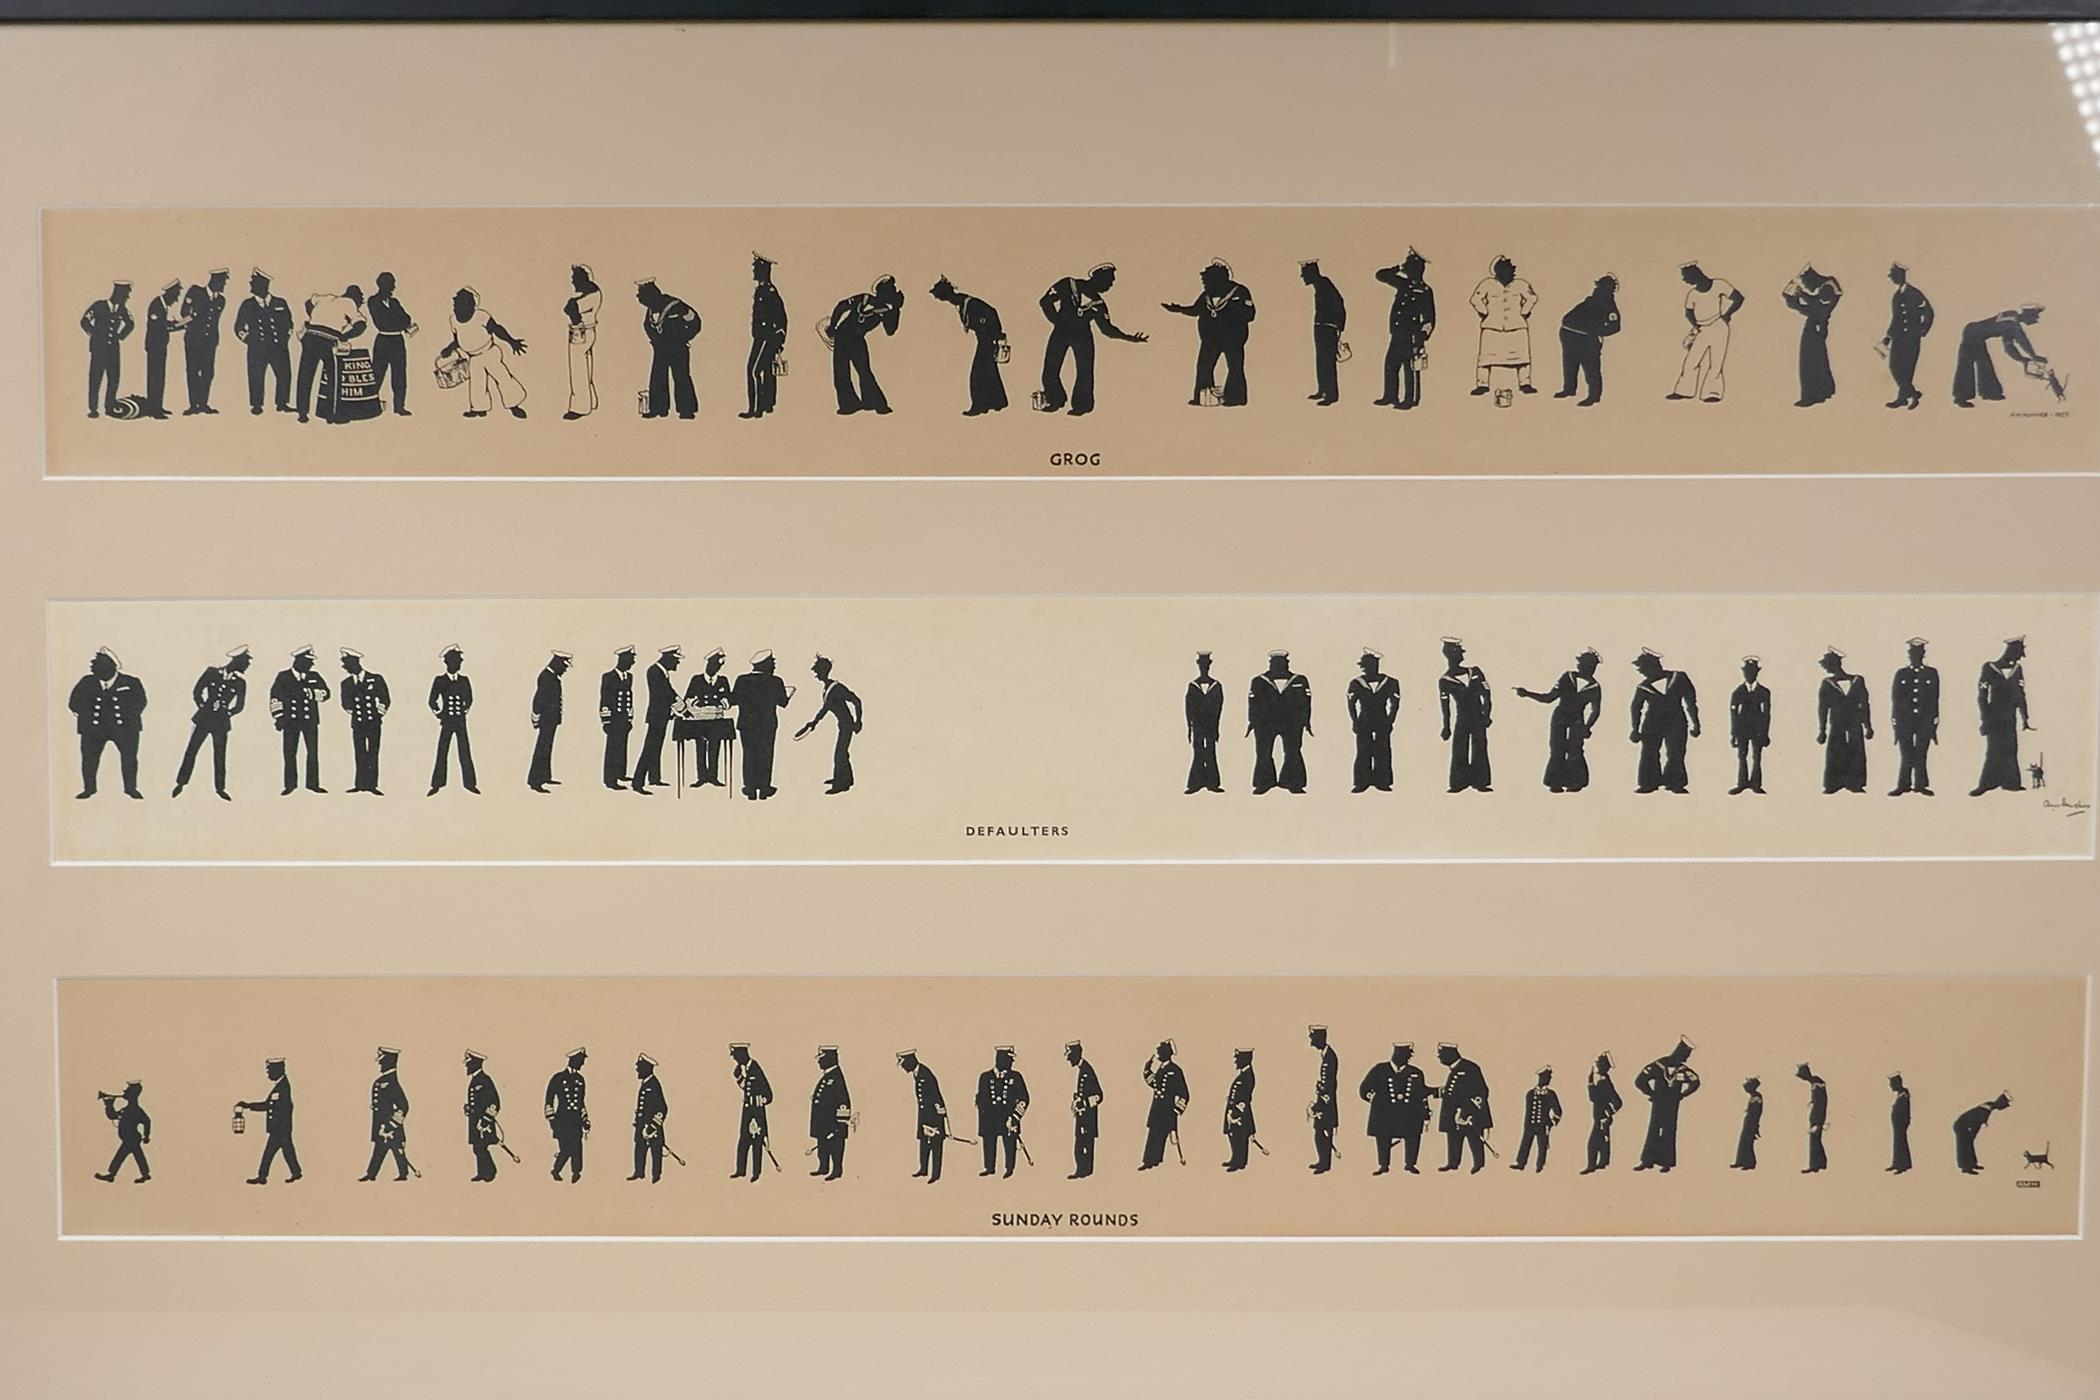 A.M. Hughes, three silhouette prints of naval life, Grog, Defaulters and Sunday Rounds, mounted in a